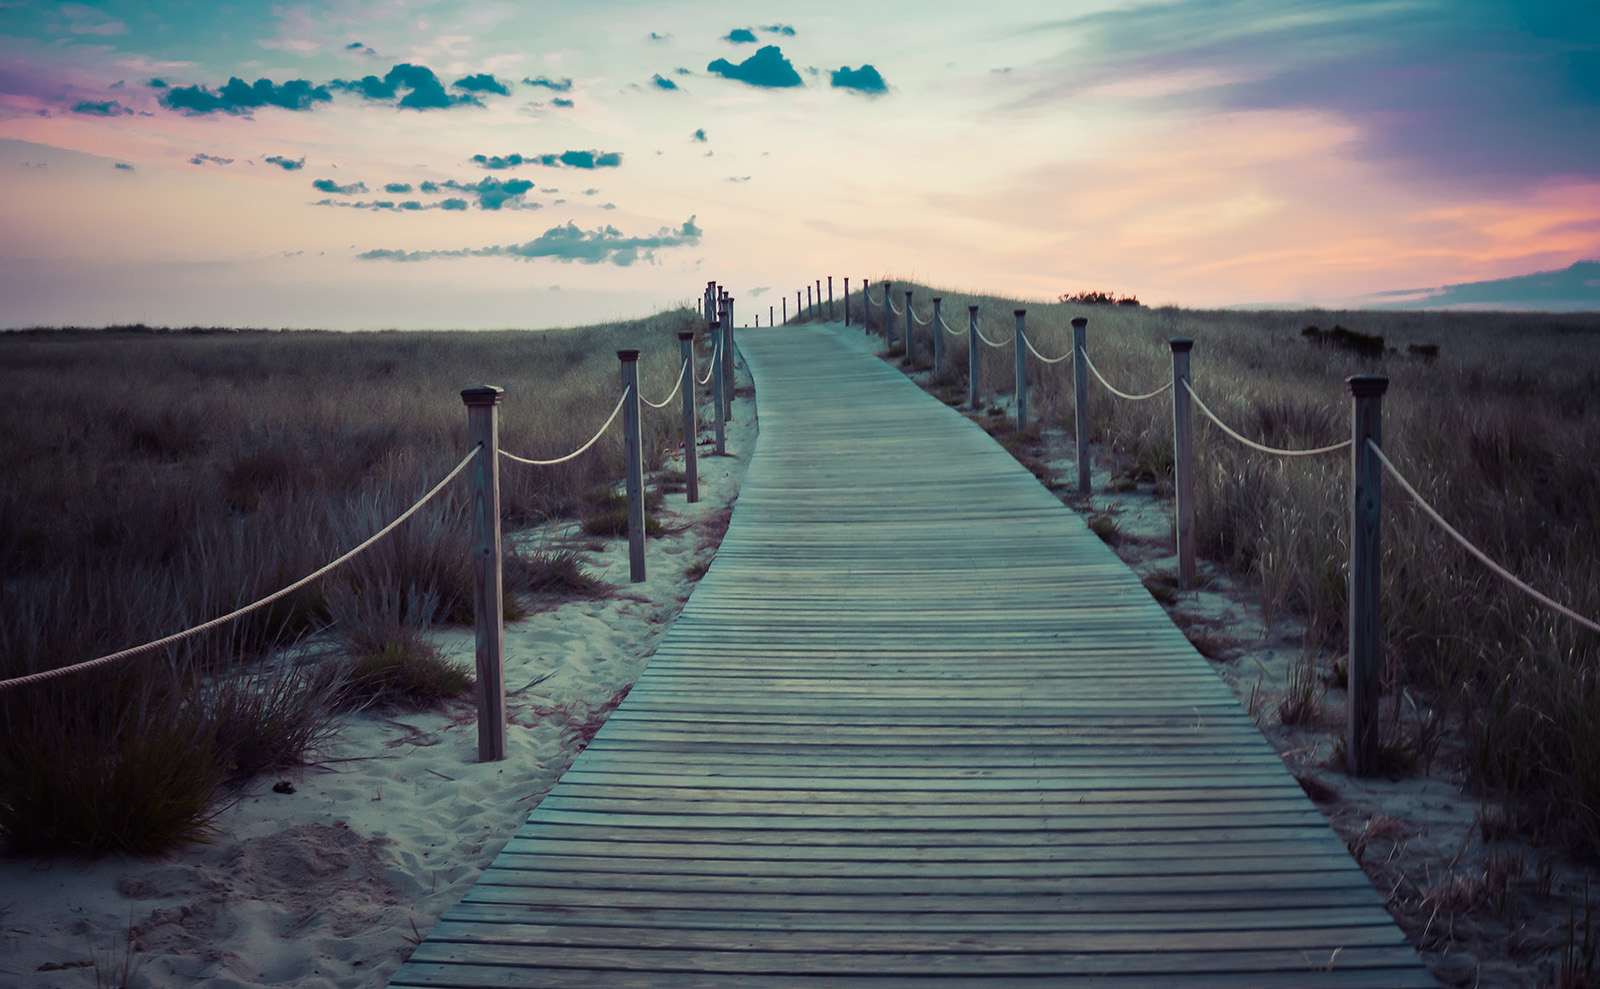 brown wooden boardwalk leading to the beach at sunset